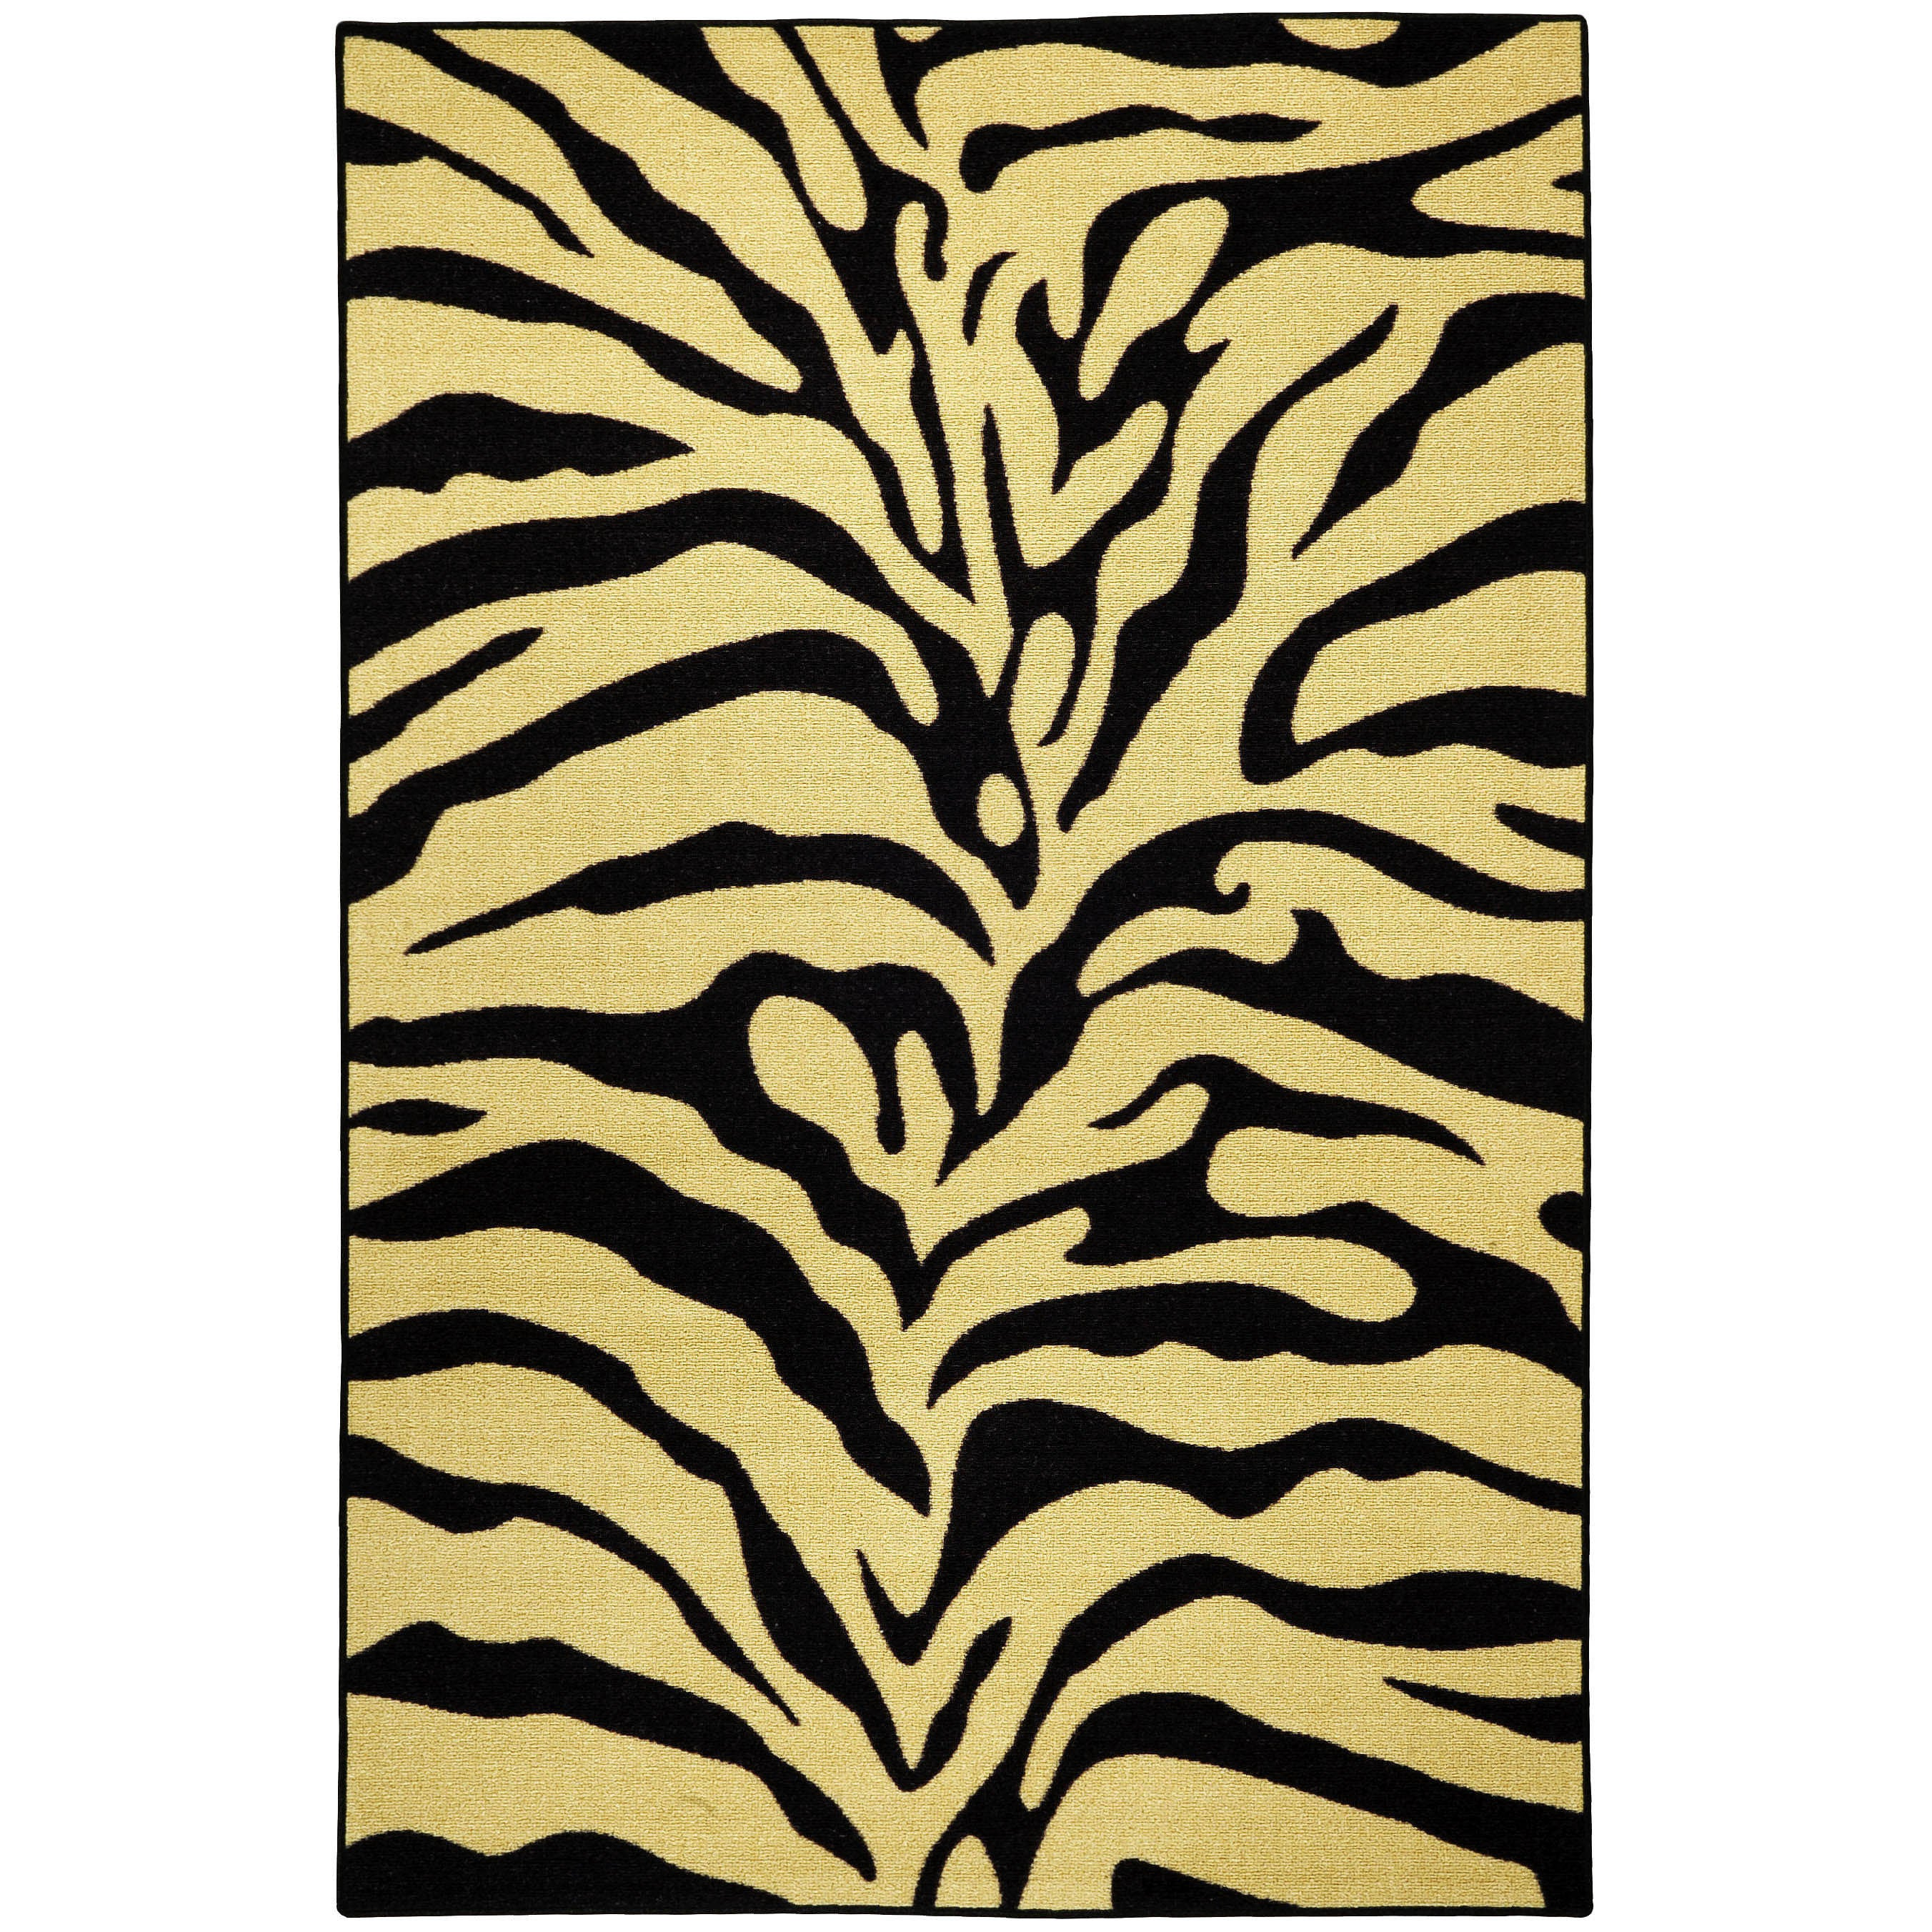 Rubber Back Black and Ivory Tiger Print Non-Skid Area Rug (3'3 x 5') at Sears.com